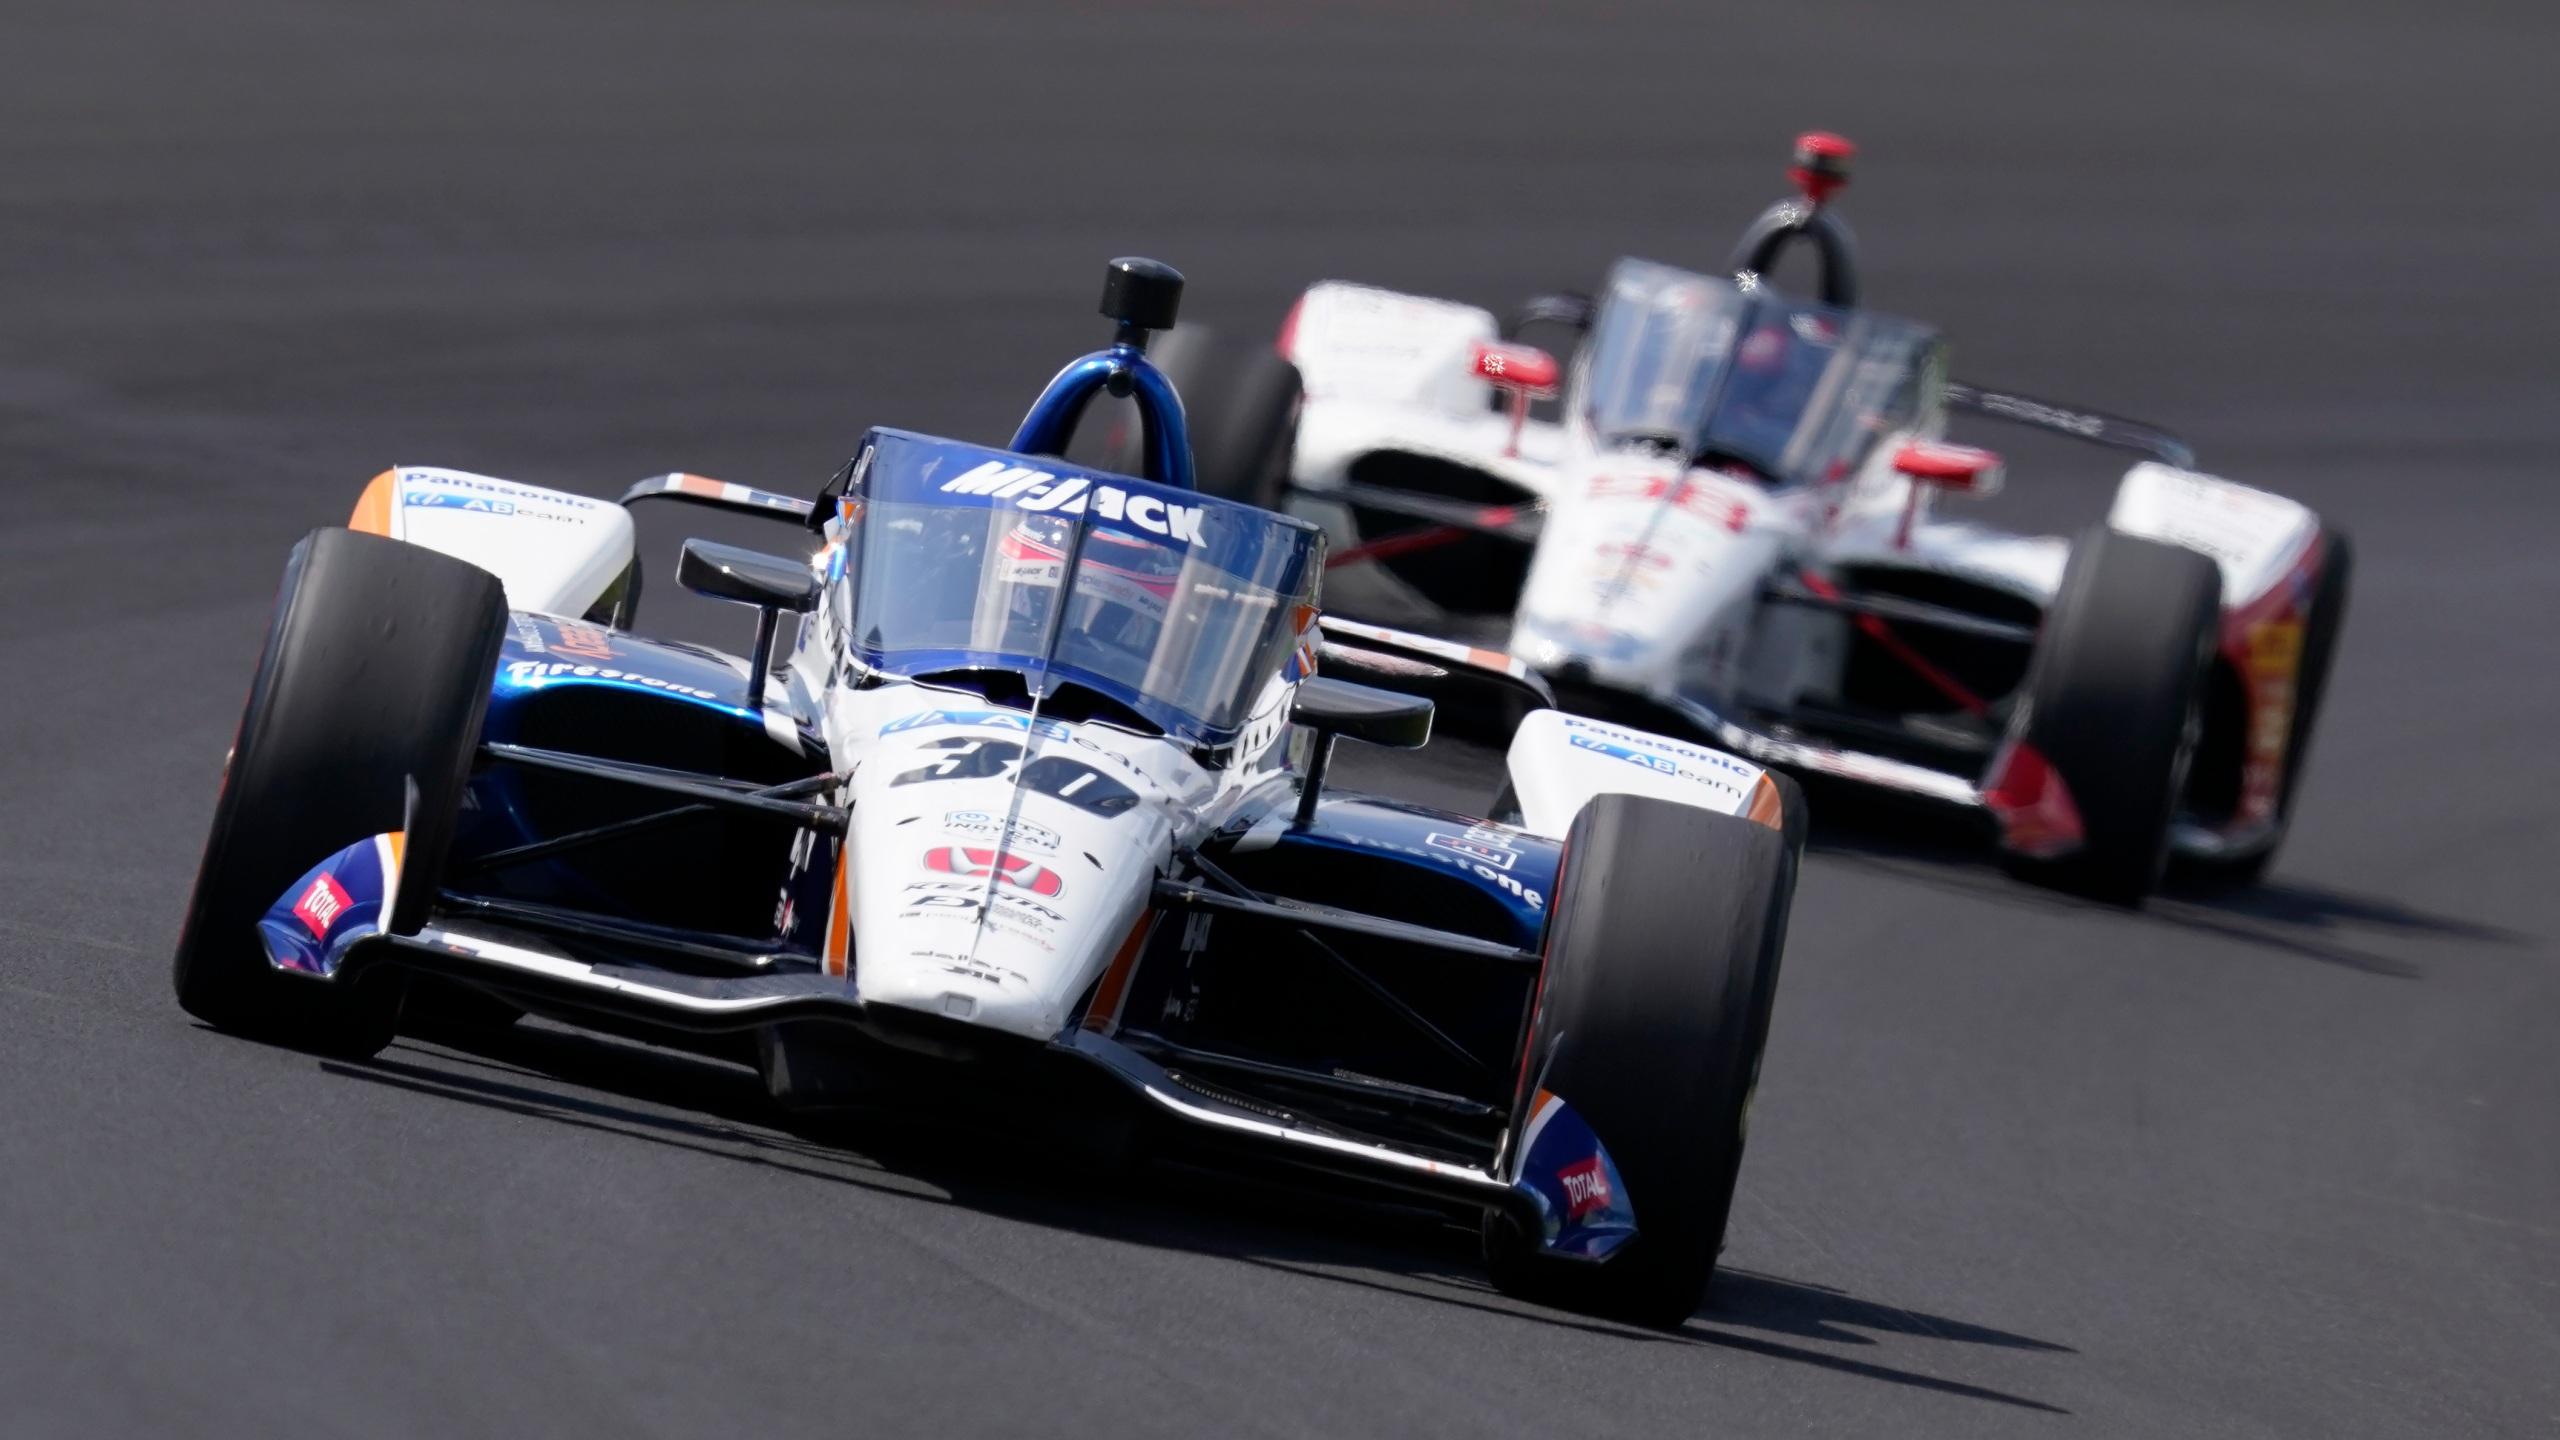 Sato wins 2nd Indy 500 as race ends under yellow